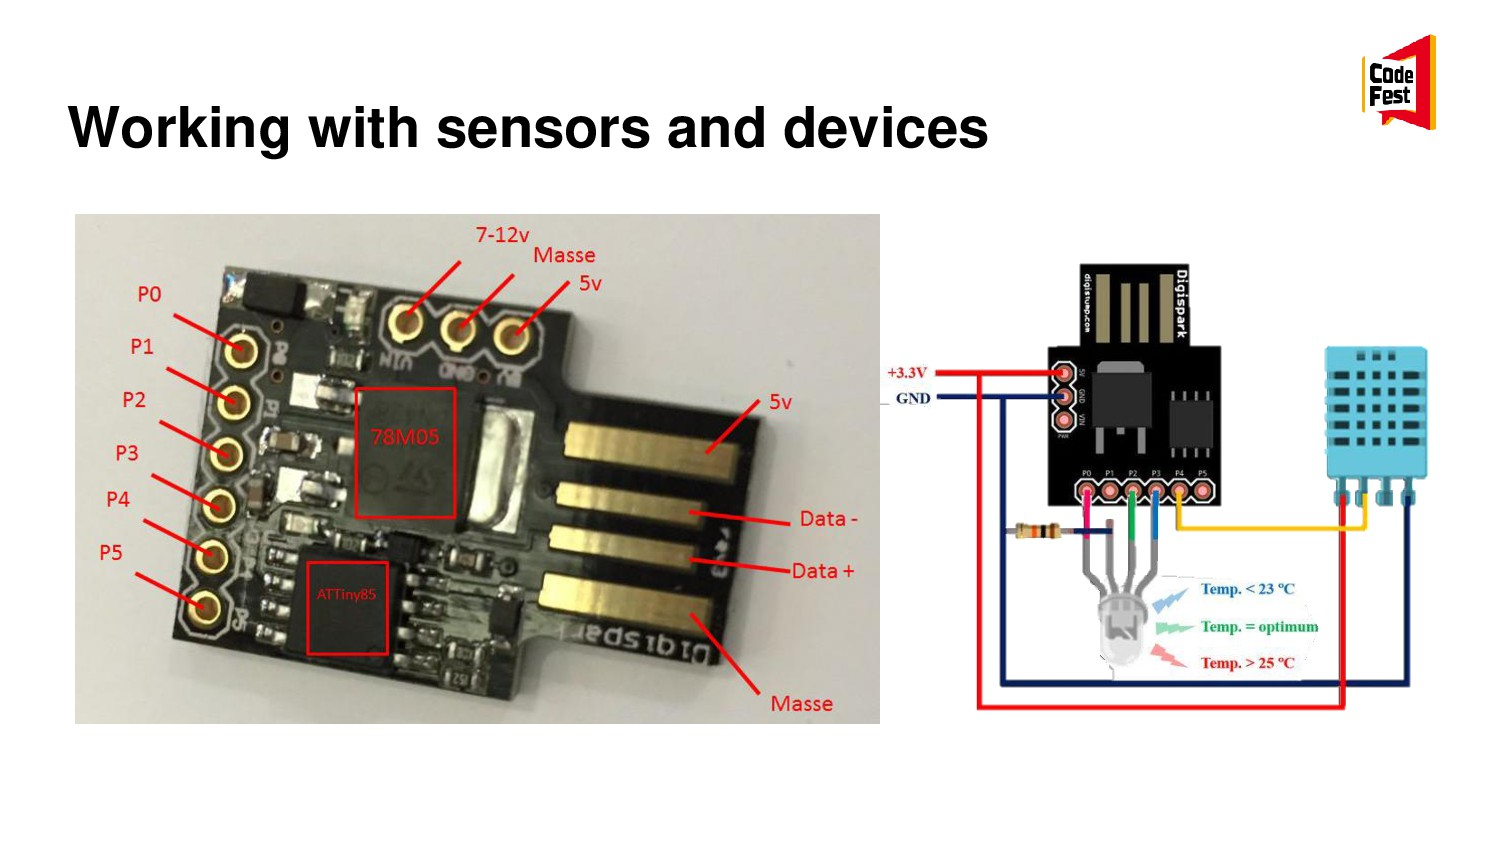 Working with sensors and devices